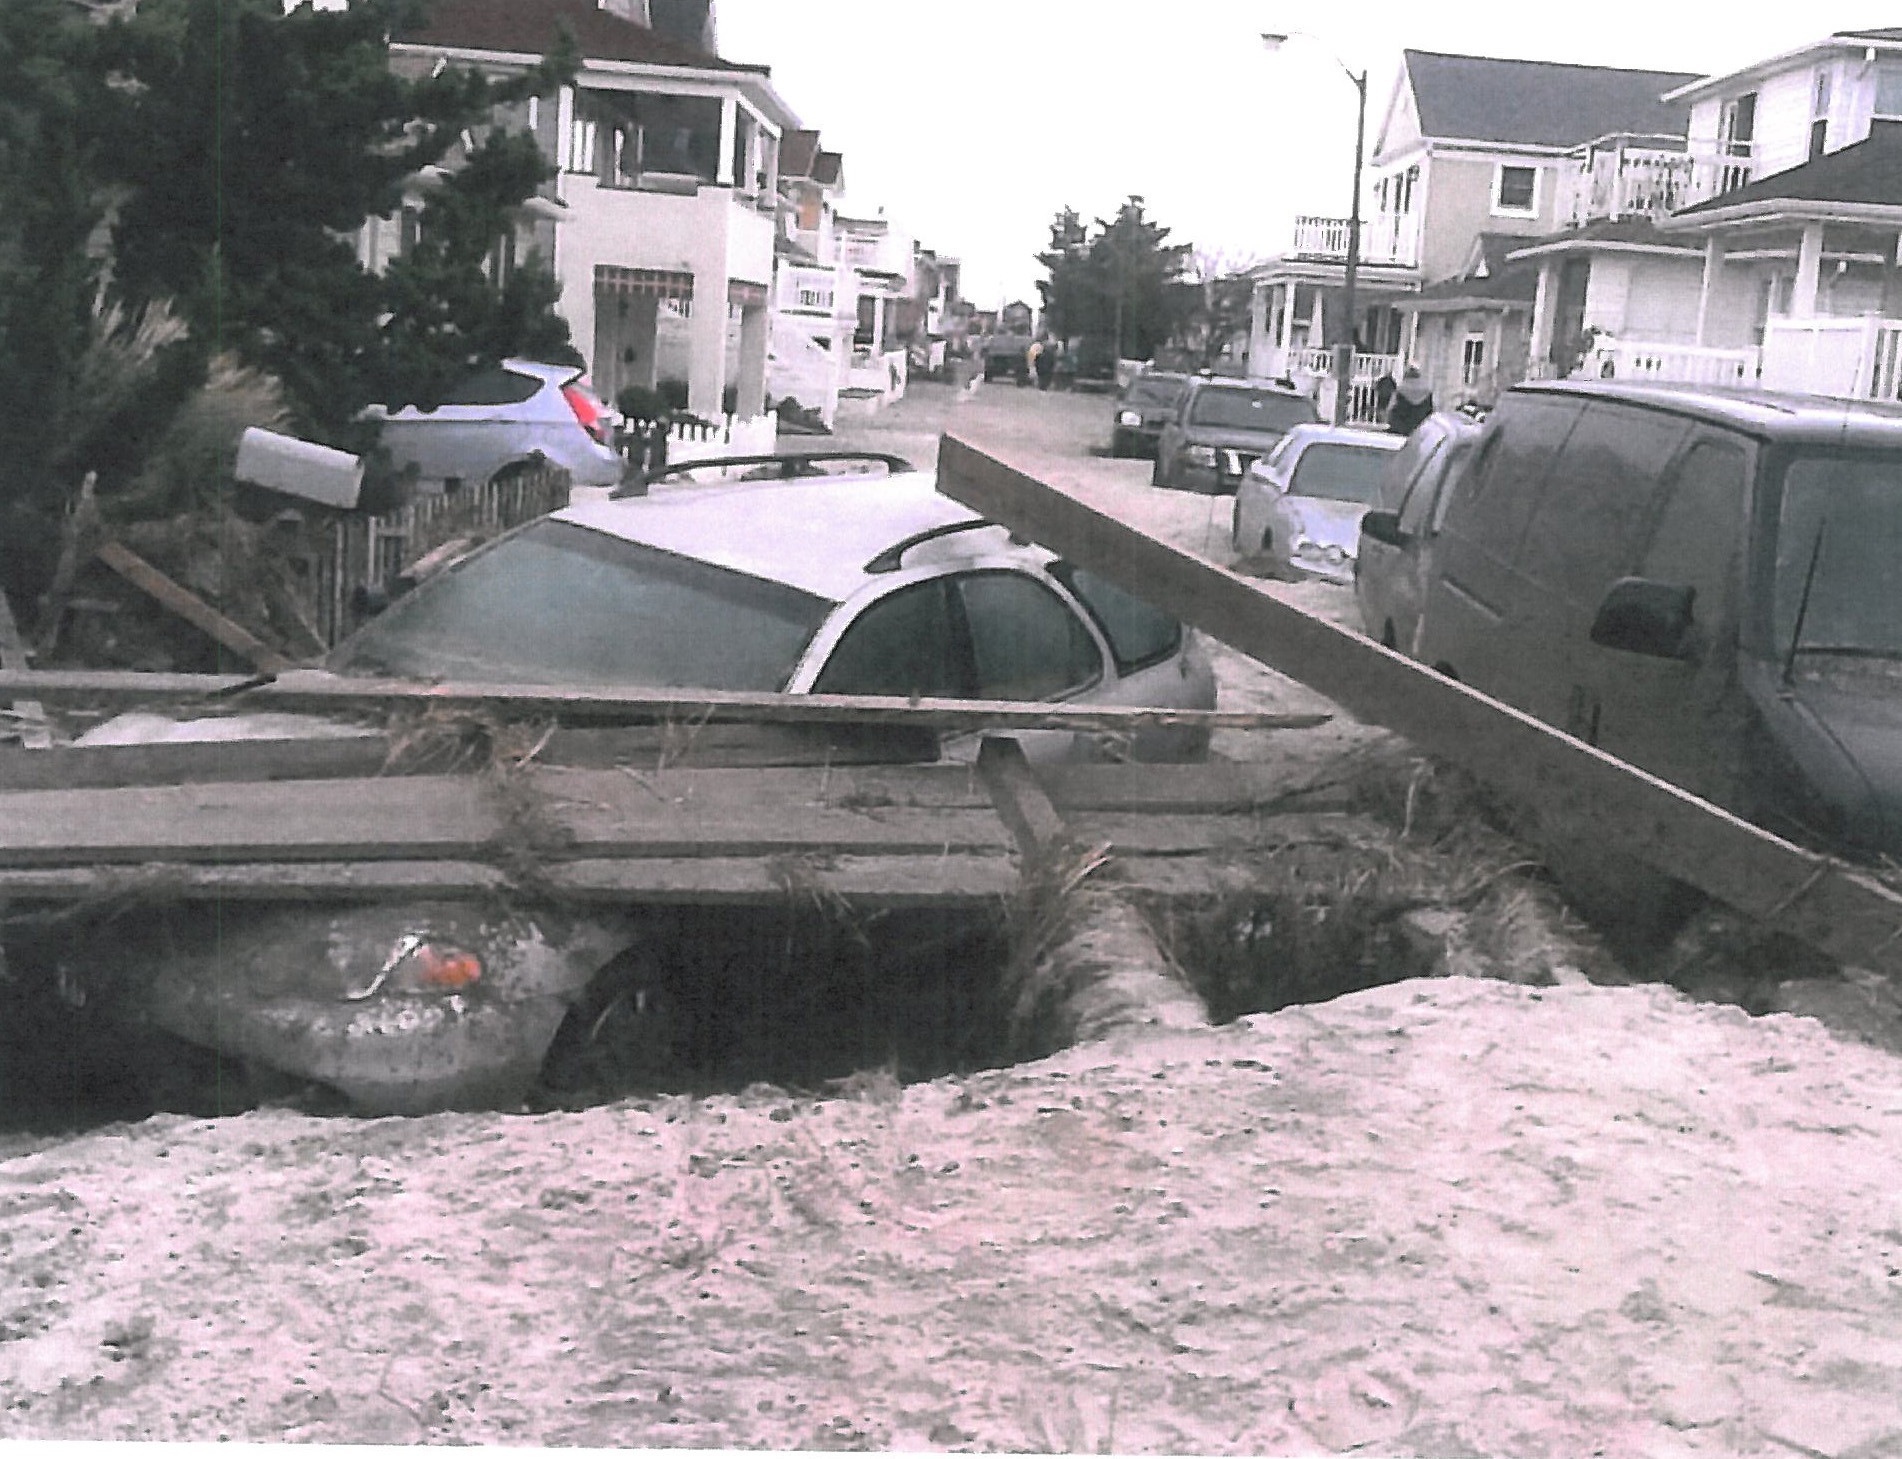 Hurricane Sandy devastated Michigan Street in Long Beach, where Bob Kaible and his wife, Deborah Raimey, owned a rental property. A false engineering report claimed that damage to their property resulted not from flooding, but earth movement.